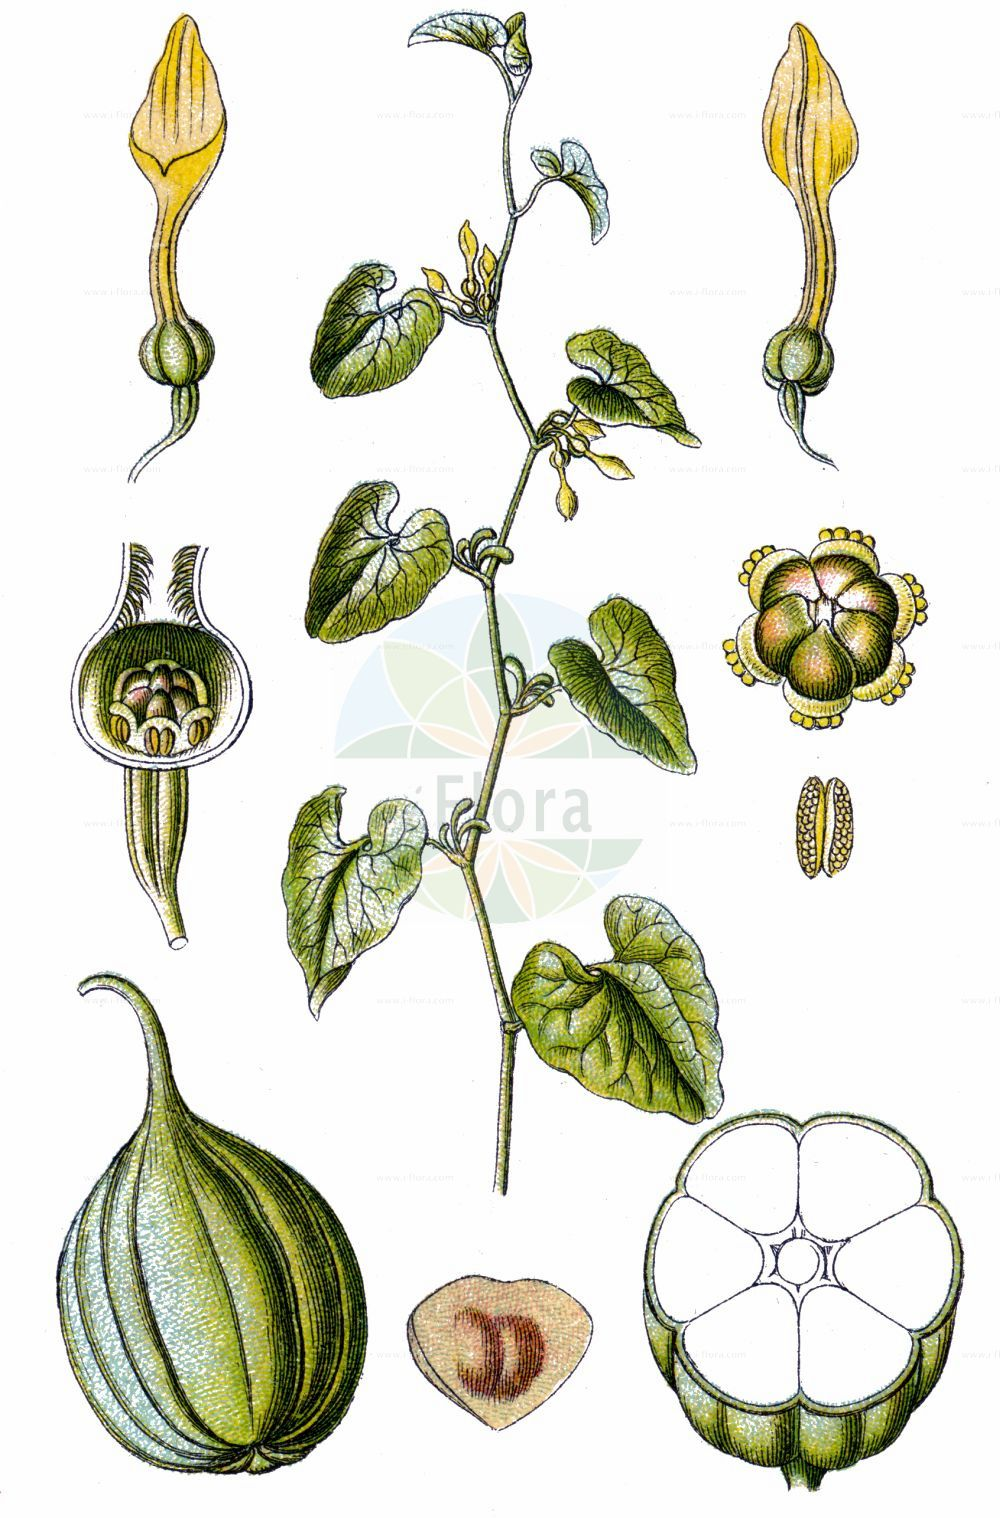 Historische Abbildung von Aristolochia clematitis (Gewoehnliche Osterluzei - Birthwort). Das Bild zeigt Blatt, Bluete, Frucht und Same. ---- Historical Drawing of Aristolochia clematitis (Gewoehnliche Osterluzei - Birthwort).The image is showing leaf, flower, fruit and seed.(Aristolochia clematitis,Gewoehnliche Osterluzei,Birthwort,Aristolochia clematitis,Aristolochia infesta,Gewoehnliche Osterluzei,Birthwort,Common Birthwort,Dutchman's Pipe,Aristolochia,Osterluzei,Birthwort,Aristolochiaceae,Osterluzeigewaechse,Birthwort family,Blatt,Bluete,Frucht,Same,leaf,flower,fruit,seed,Sturm (1796f))